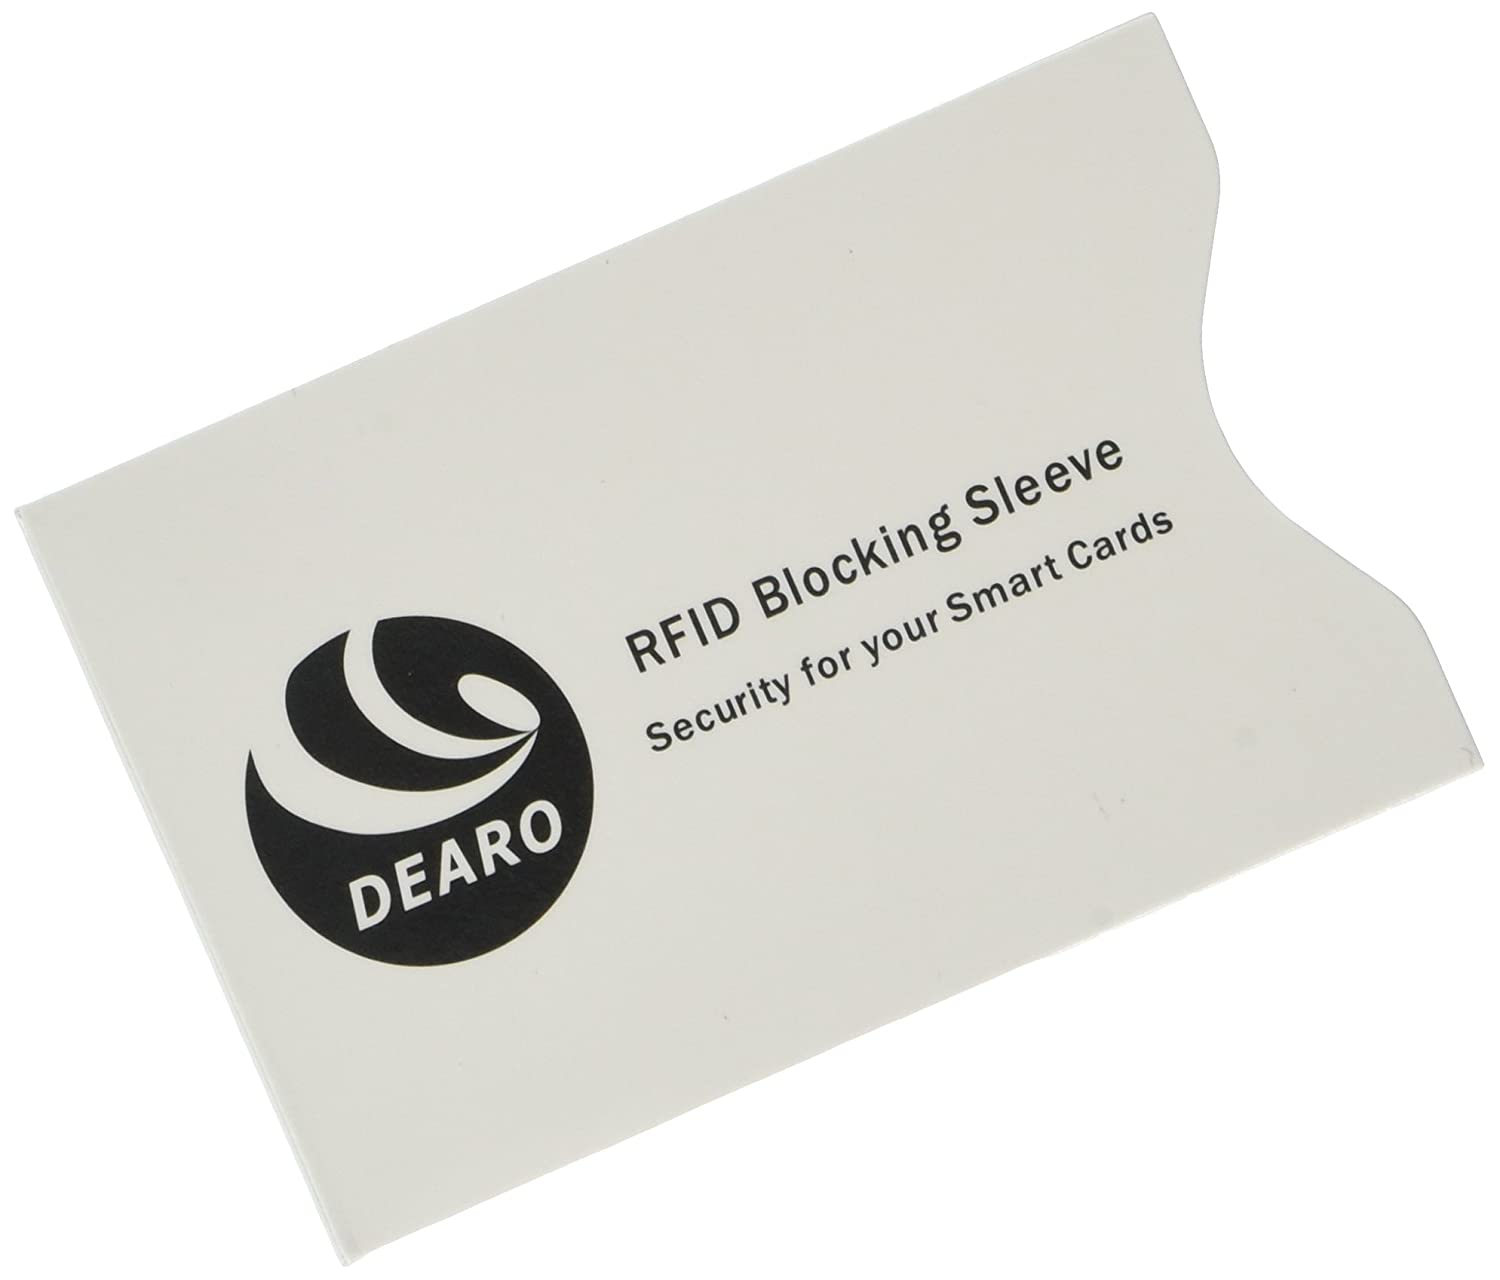 rfid blocking sleeves credit card security wallets